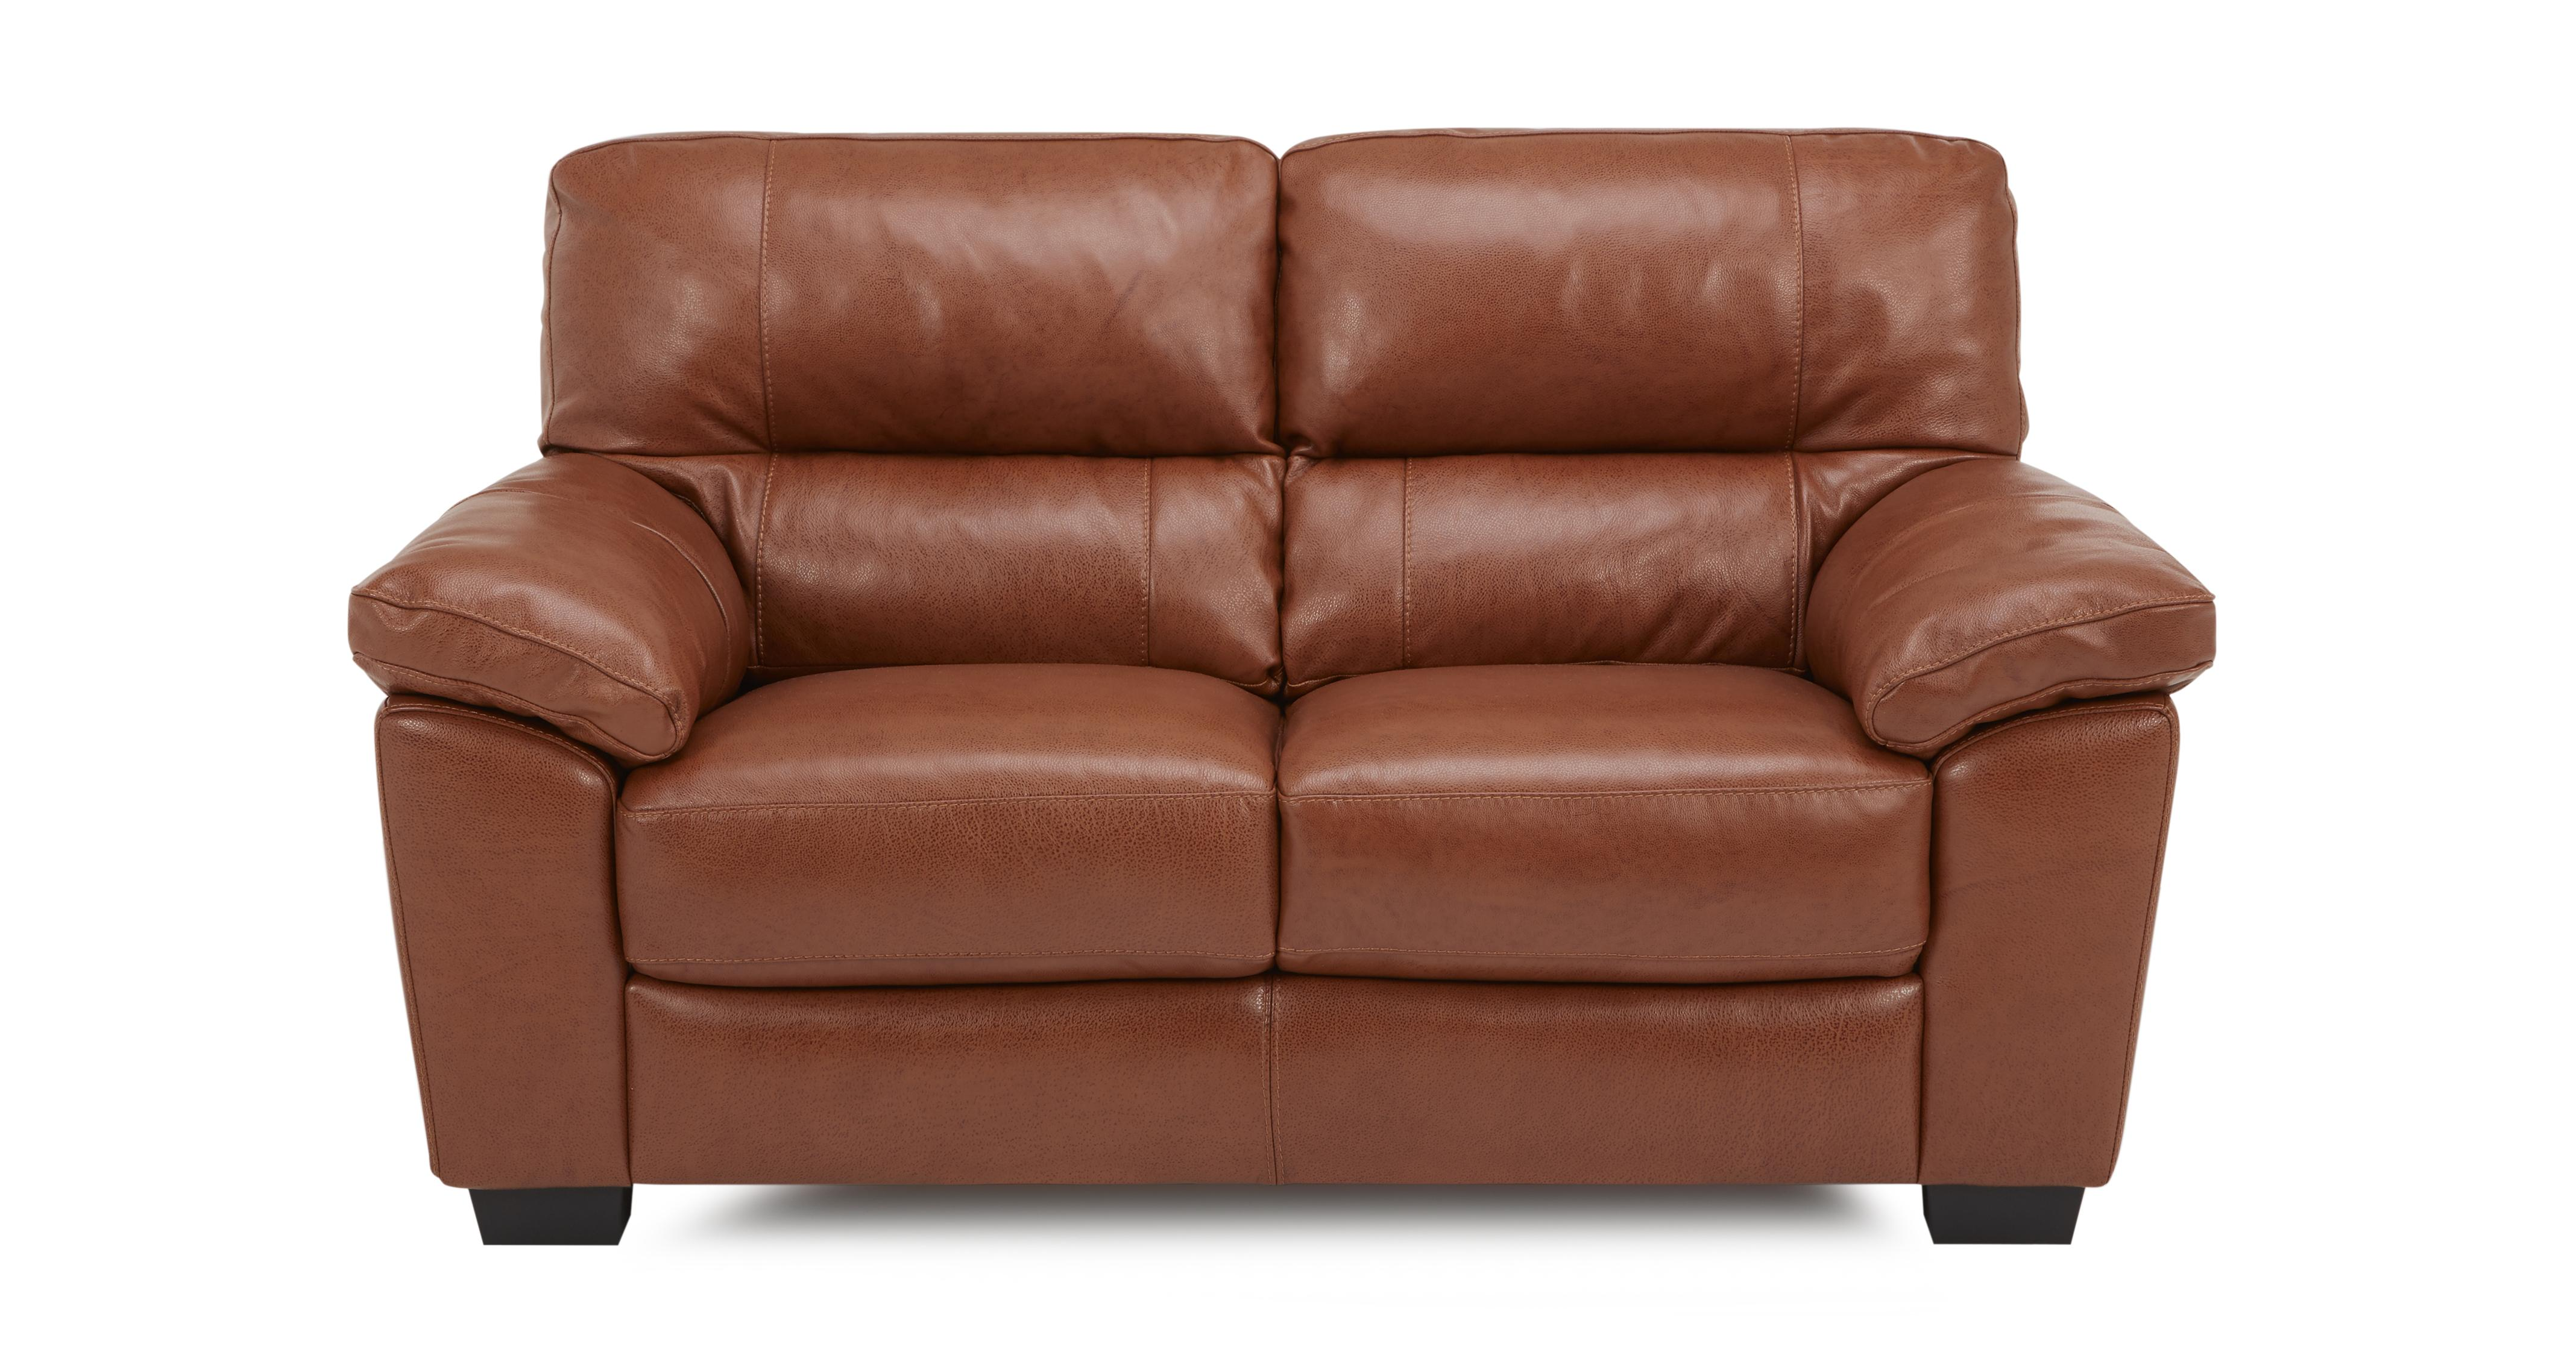 looking for leather sofas doc sofa bunk bed australia sale dalmore and look 2 seater brazil with